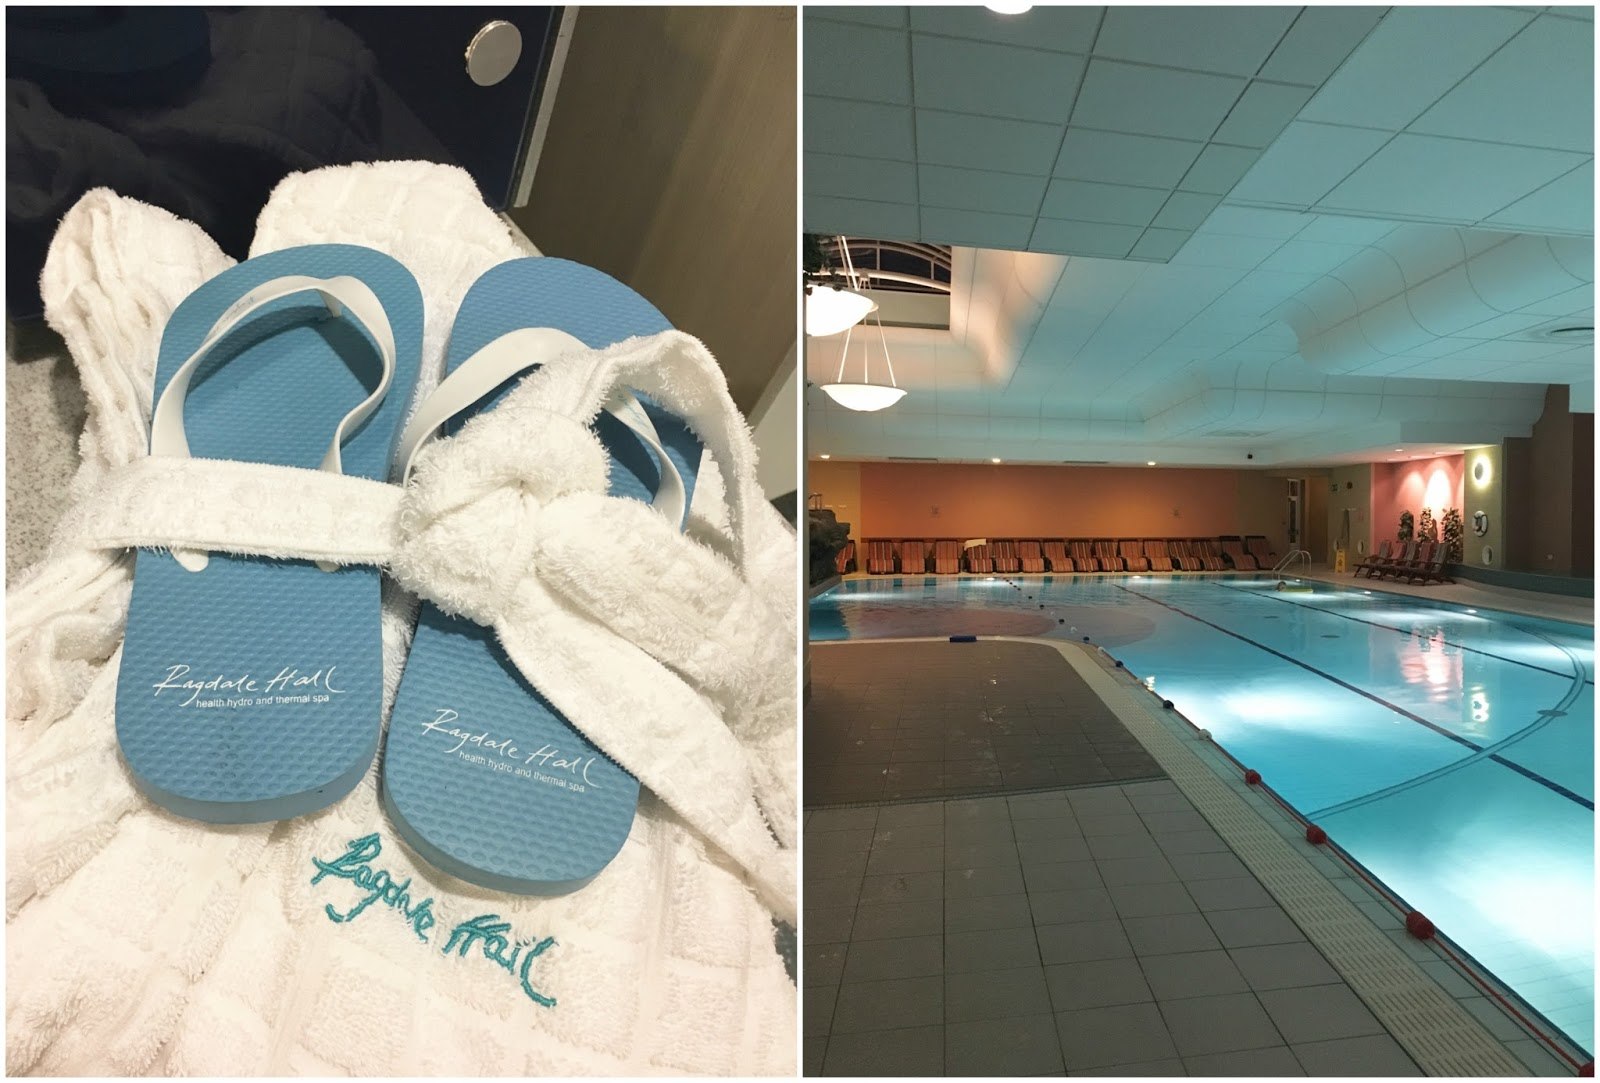 Ragdale Hall evening spa experience \ Leicestershire \ health hydro and spa \ Priceless Life of Mine \ Over 40 lifestyle blog